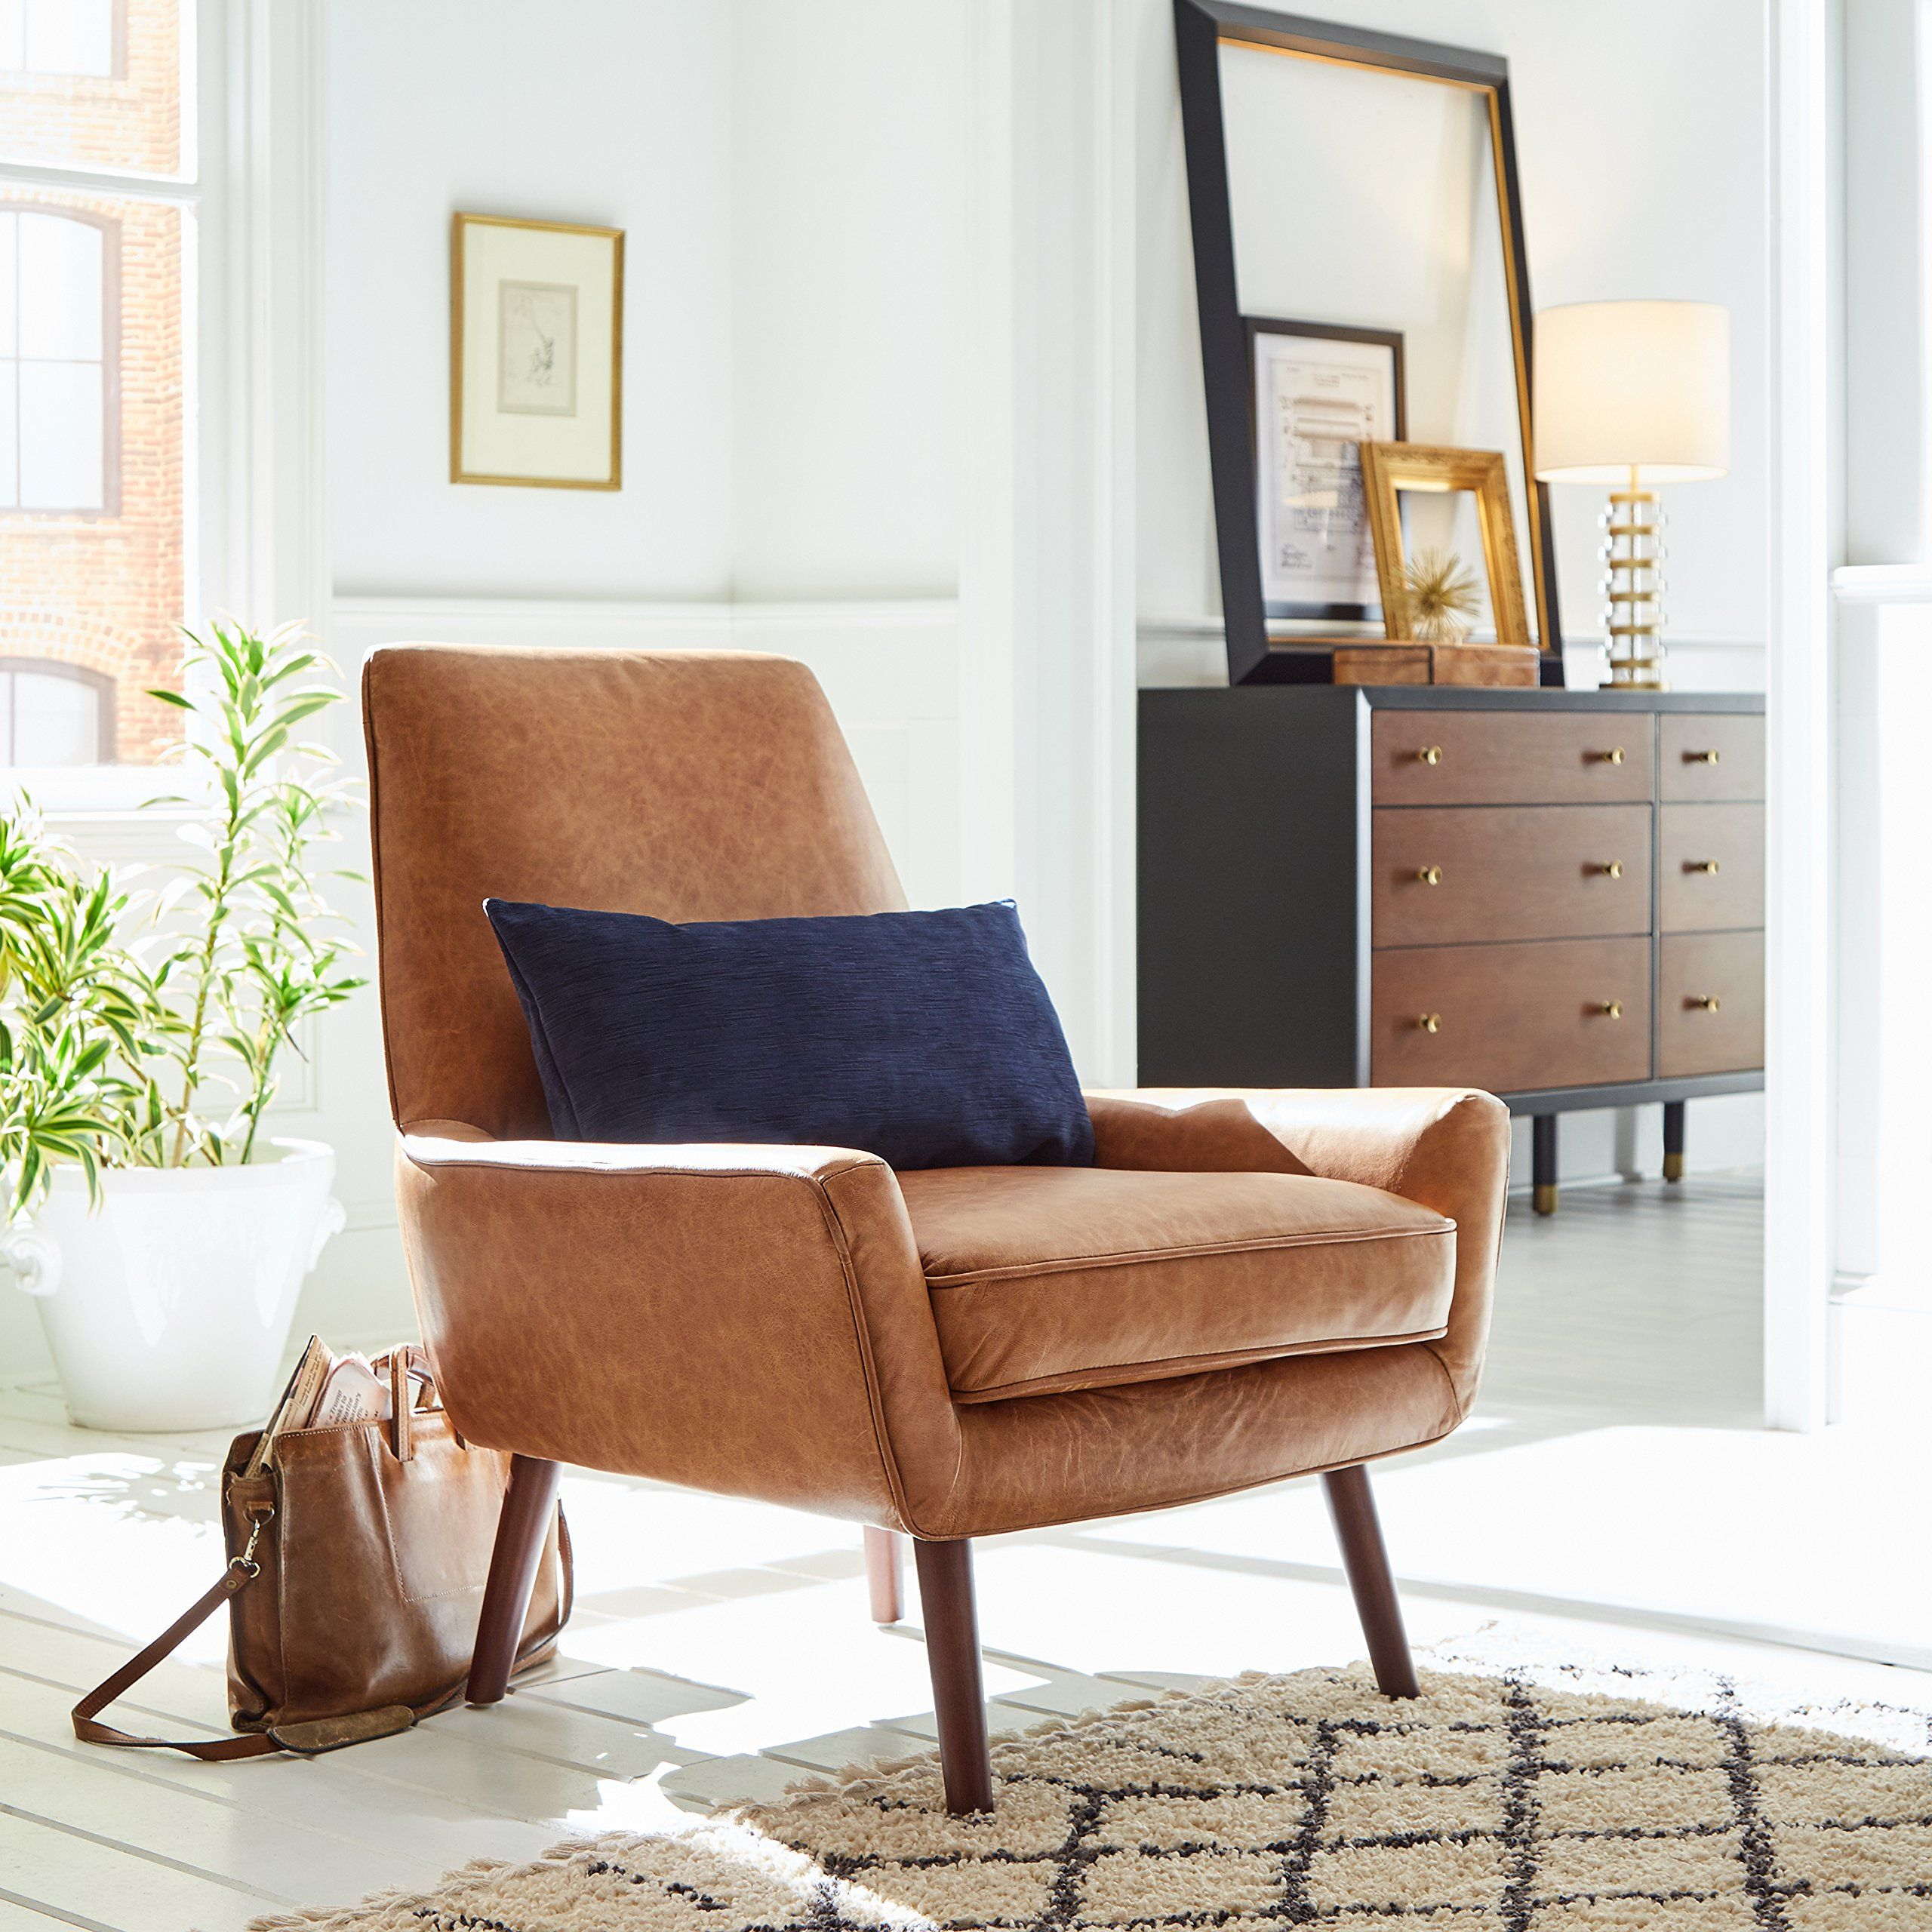 Amazing Rivet Jamie Midcentury Leather Low Arm Accent Chair 31 W Ibusinesslaw Wood Chair Design Ideas Ibusinesslaworg